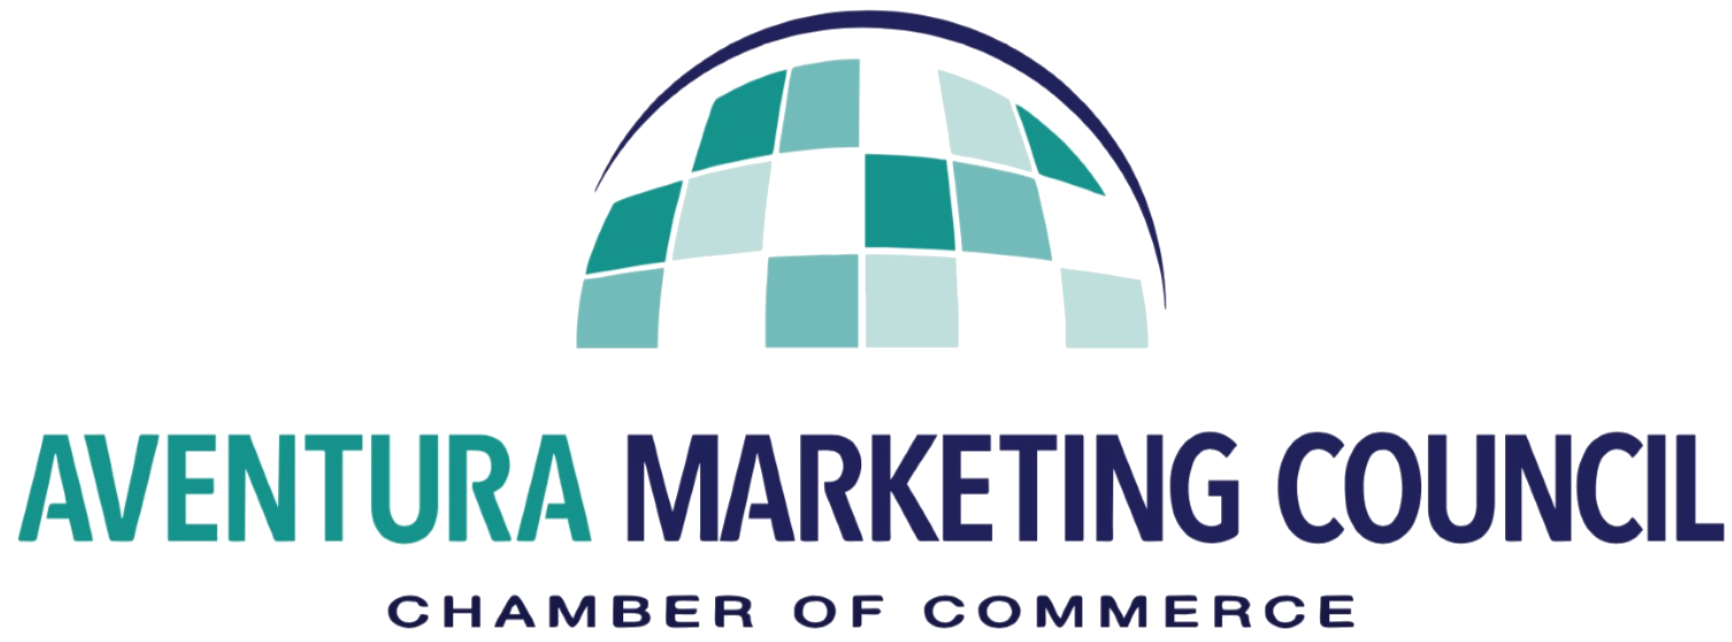 Aventura Marketing Council